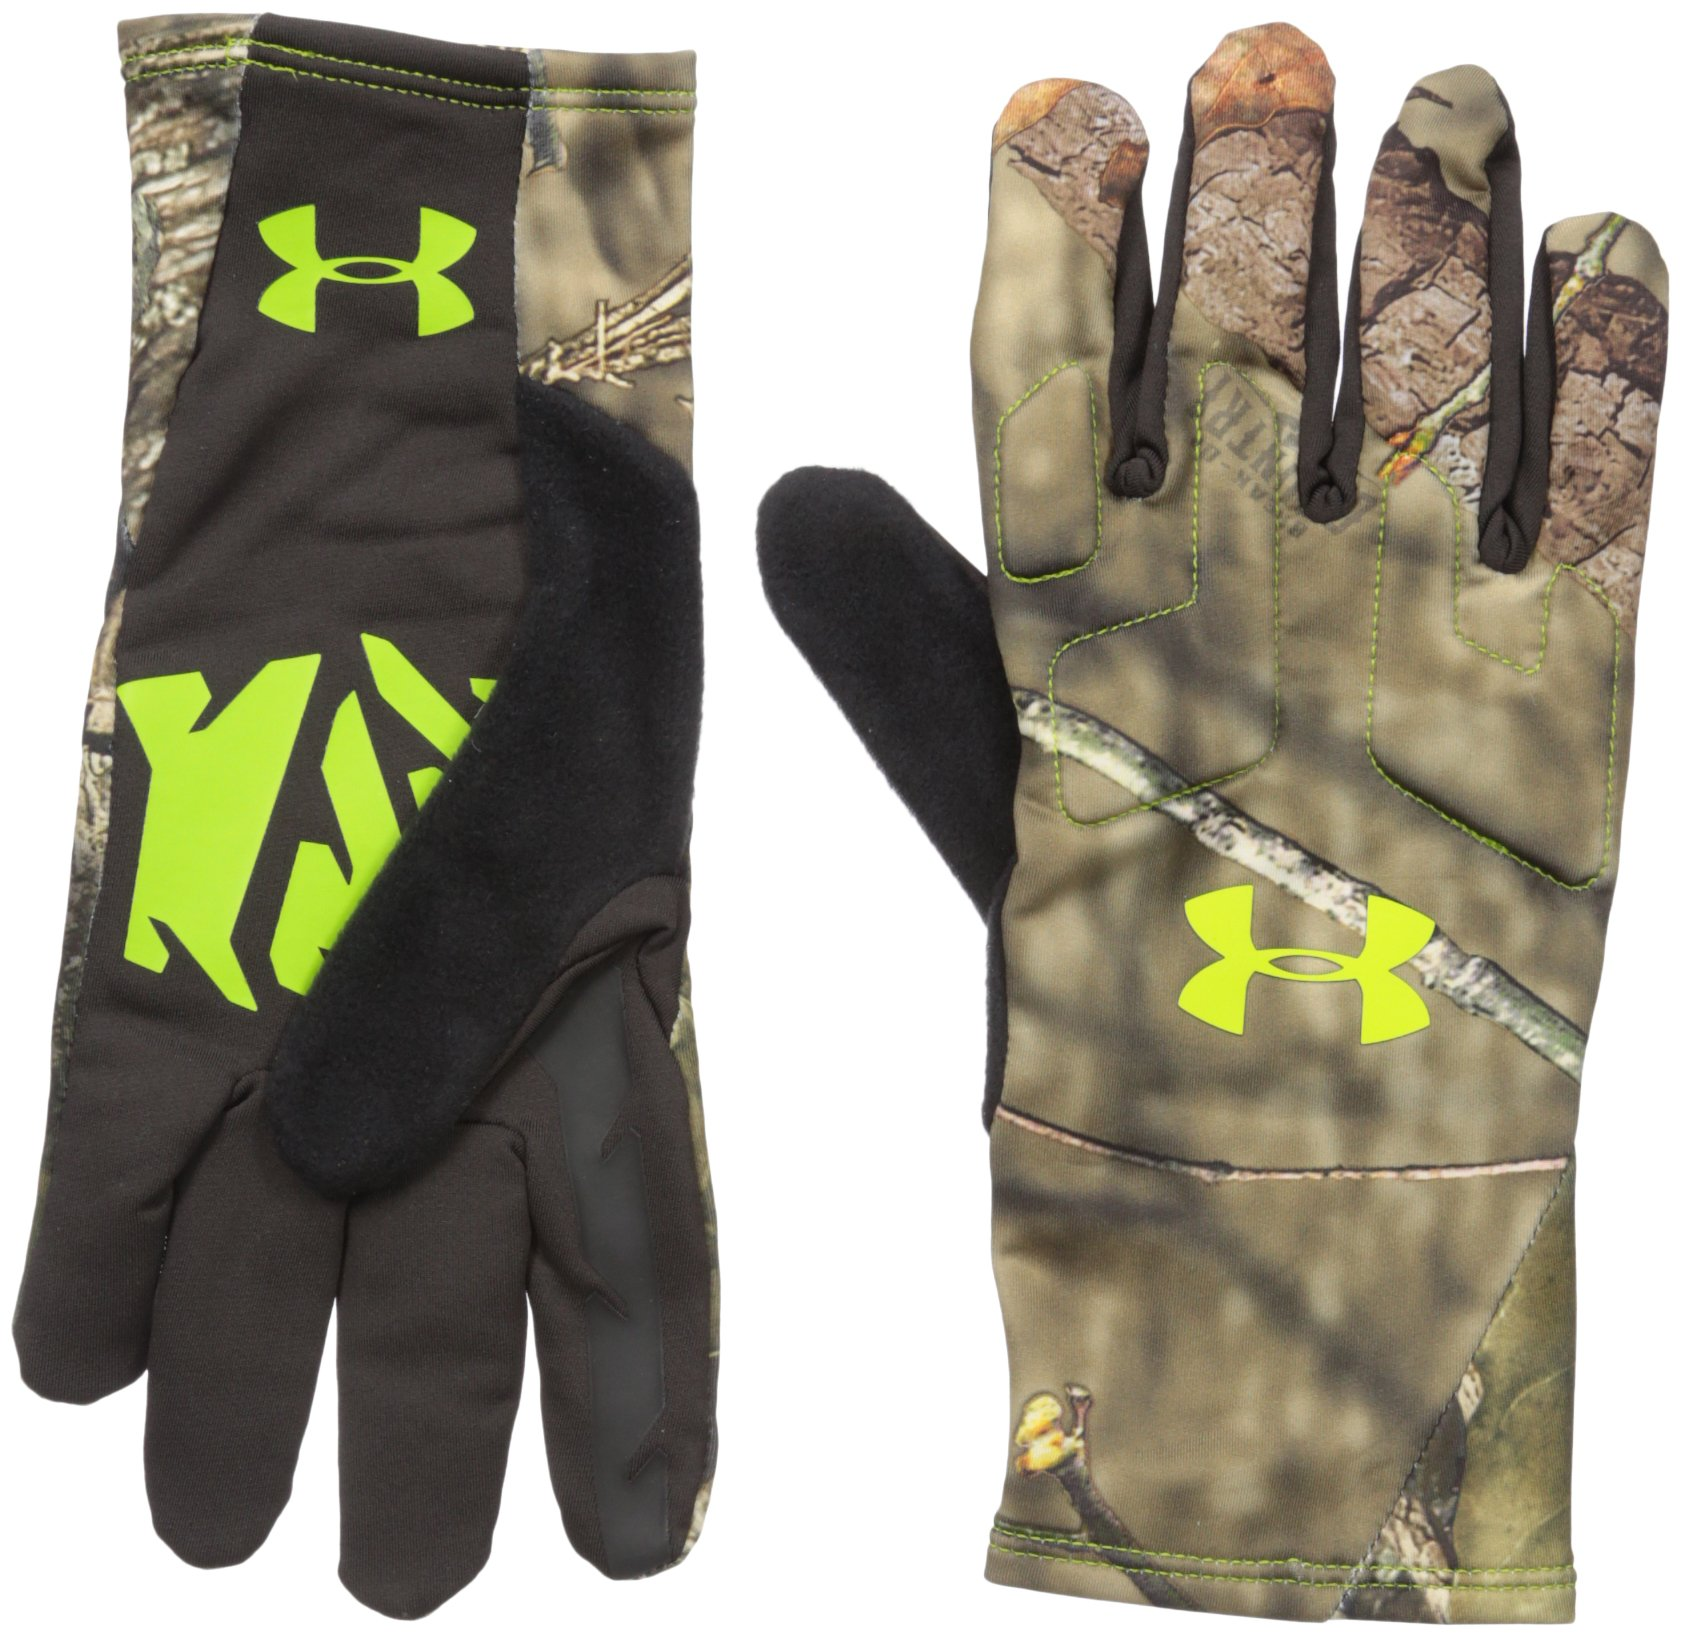 Under Armour Men's Scent Control 2 Hunting Gloves, Mossy Oak Open Count (278), Medium by Under Armour